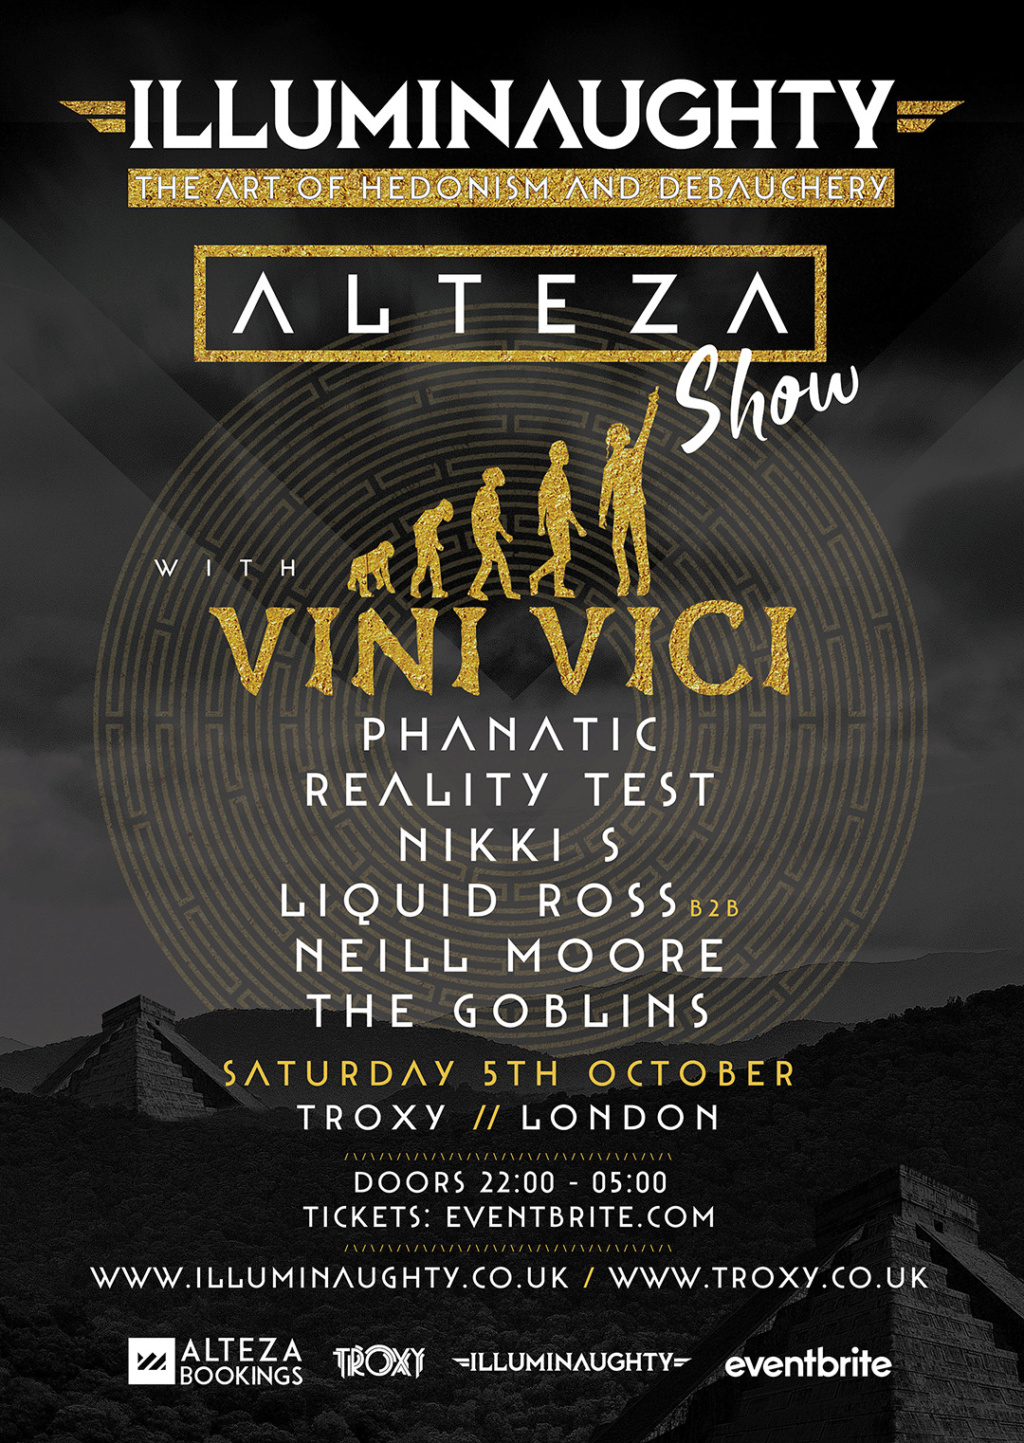 IllumiNaughty pres: Alteza Show with Vini Vici and more Octobe11